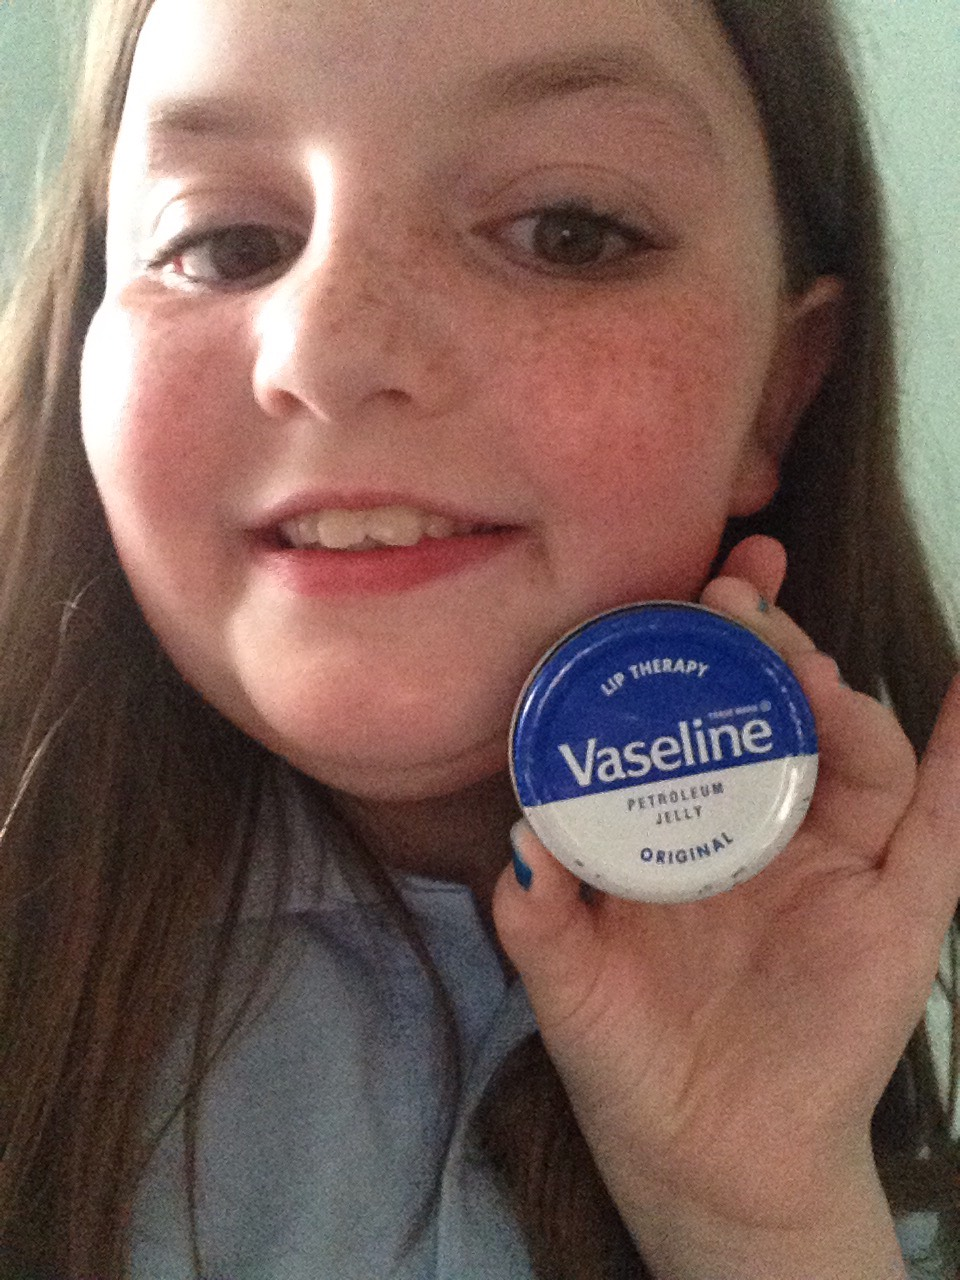 Use vasaline on you eyelashes to make them look helthier and on your lips so they are not scabby